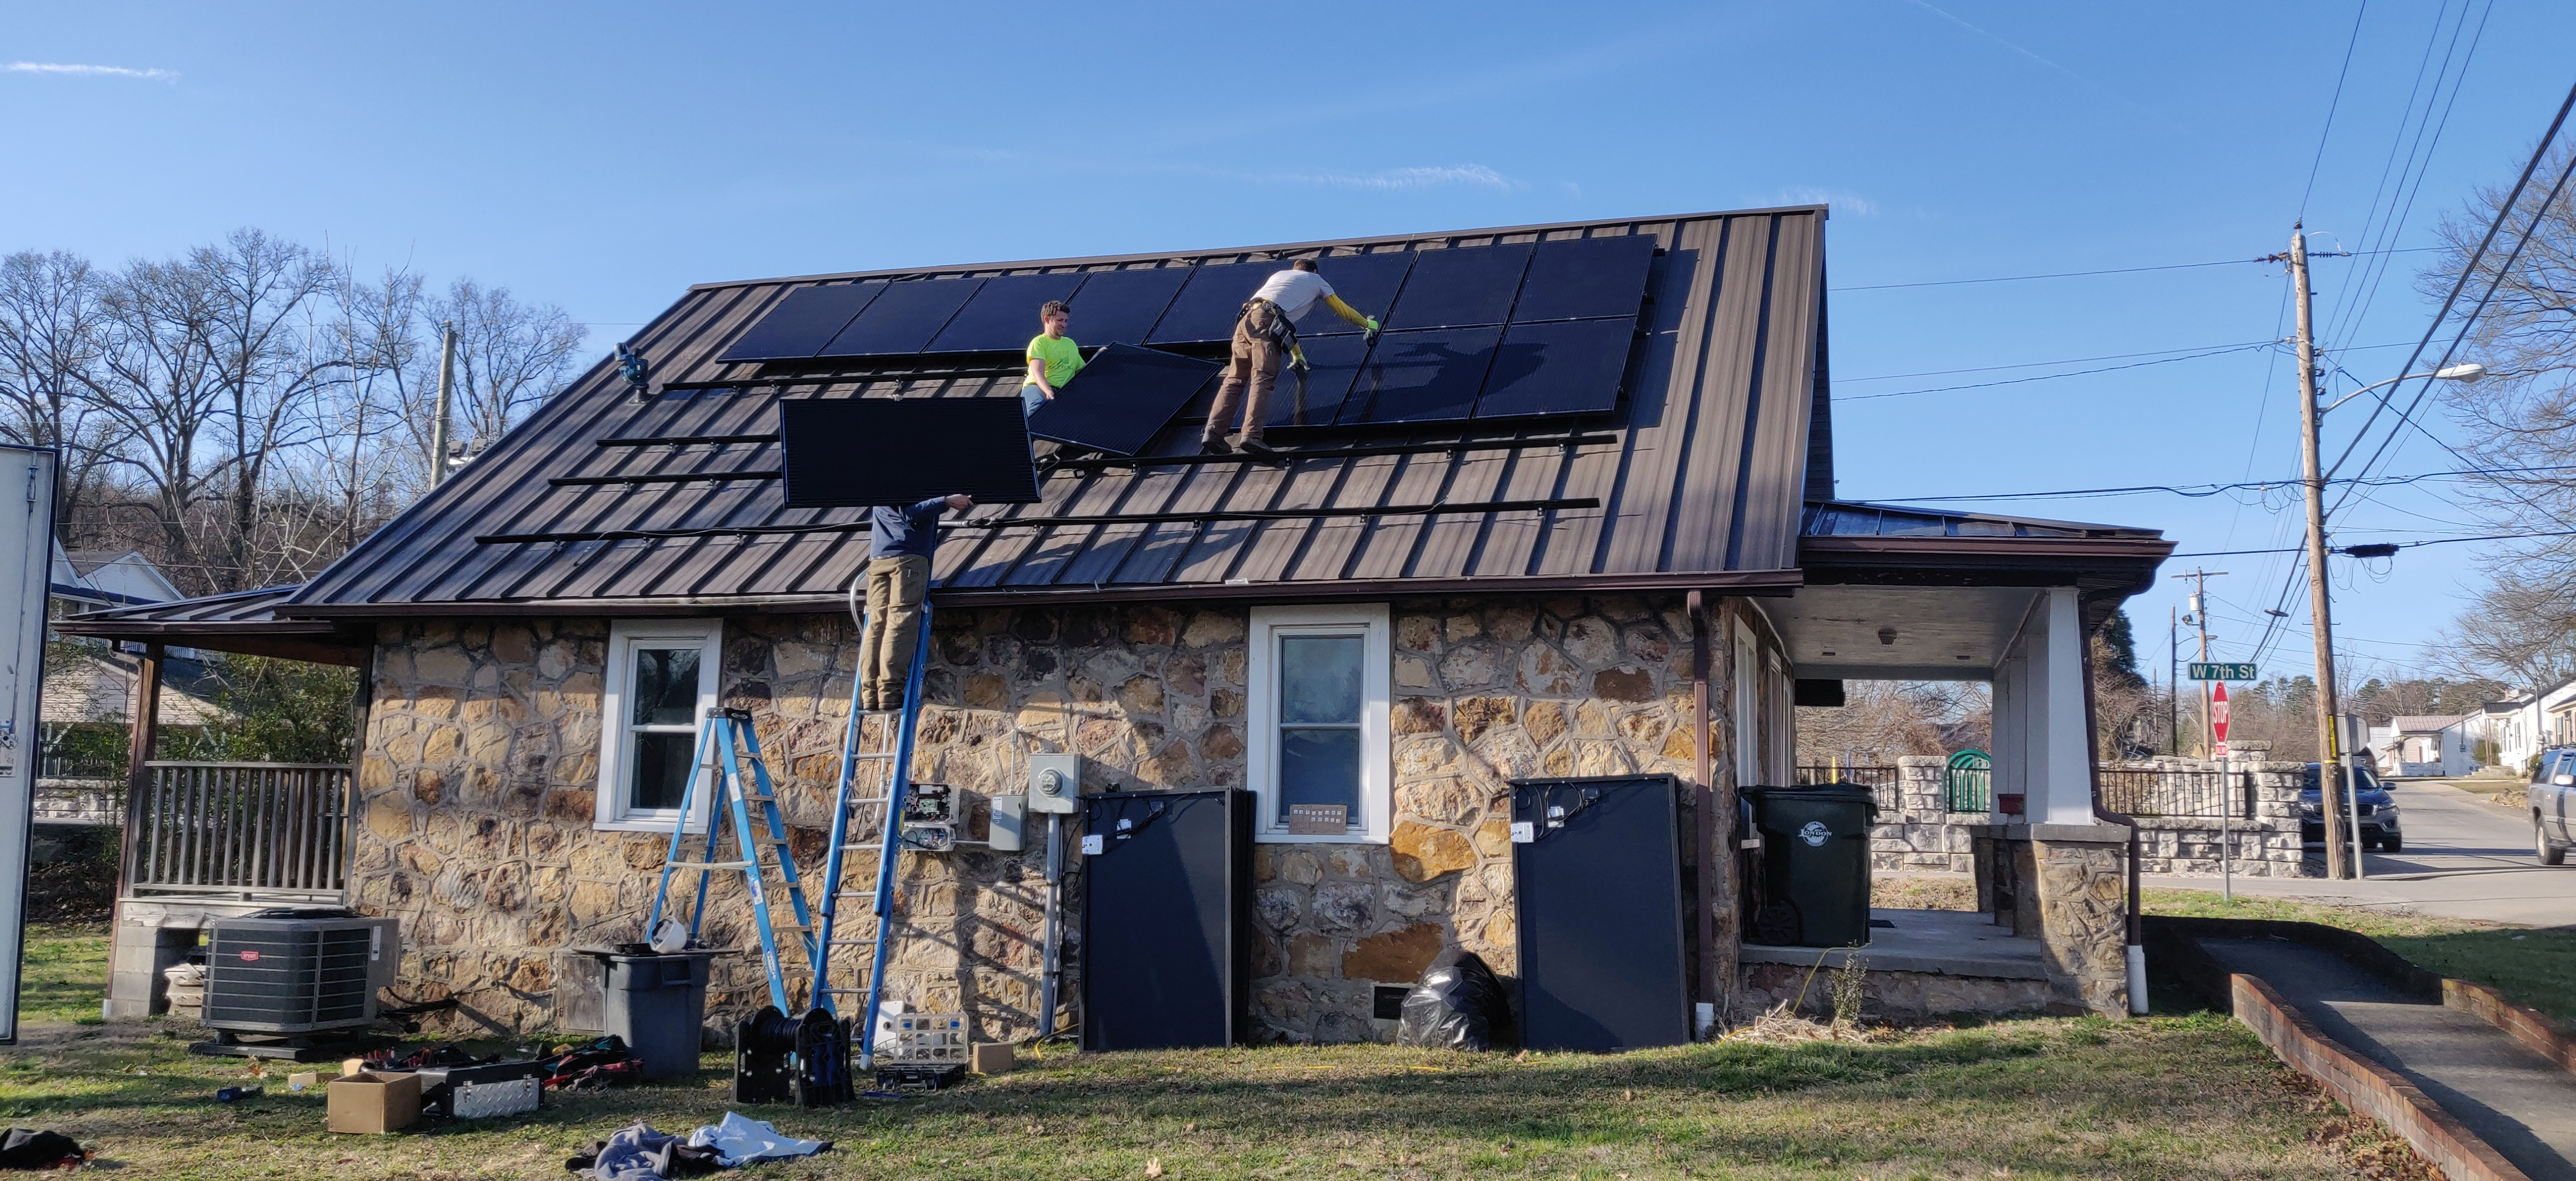 Installation of solar panels by Solar Energy Solutions